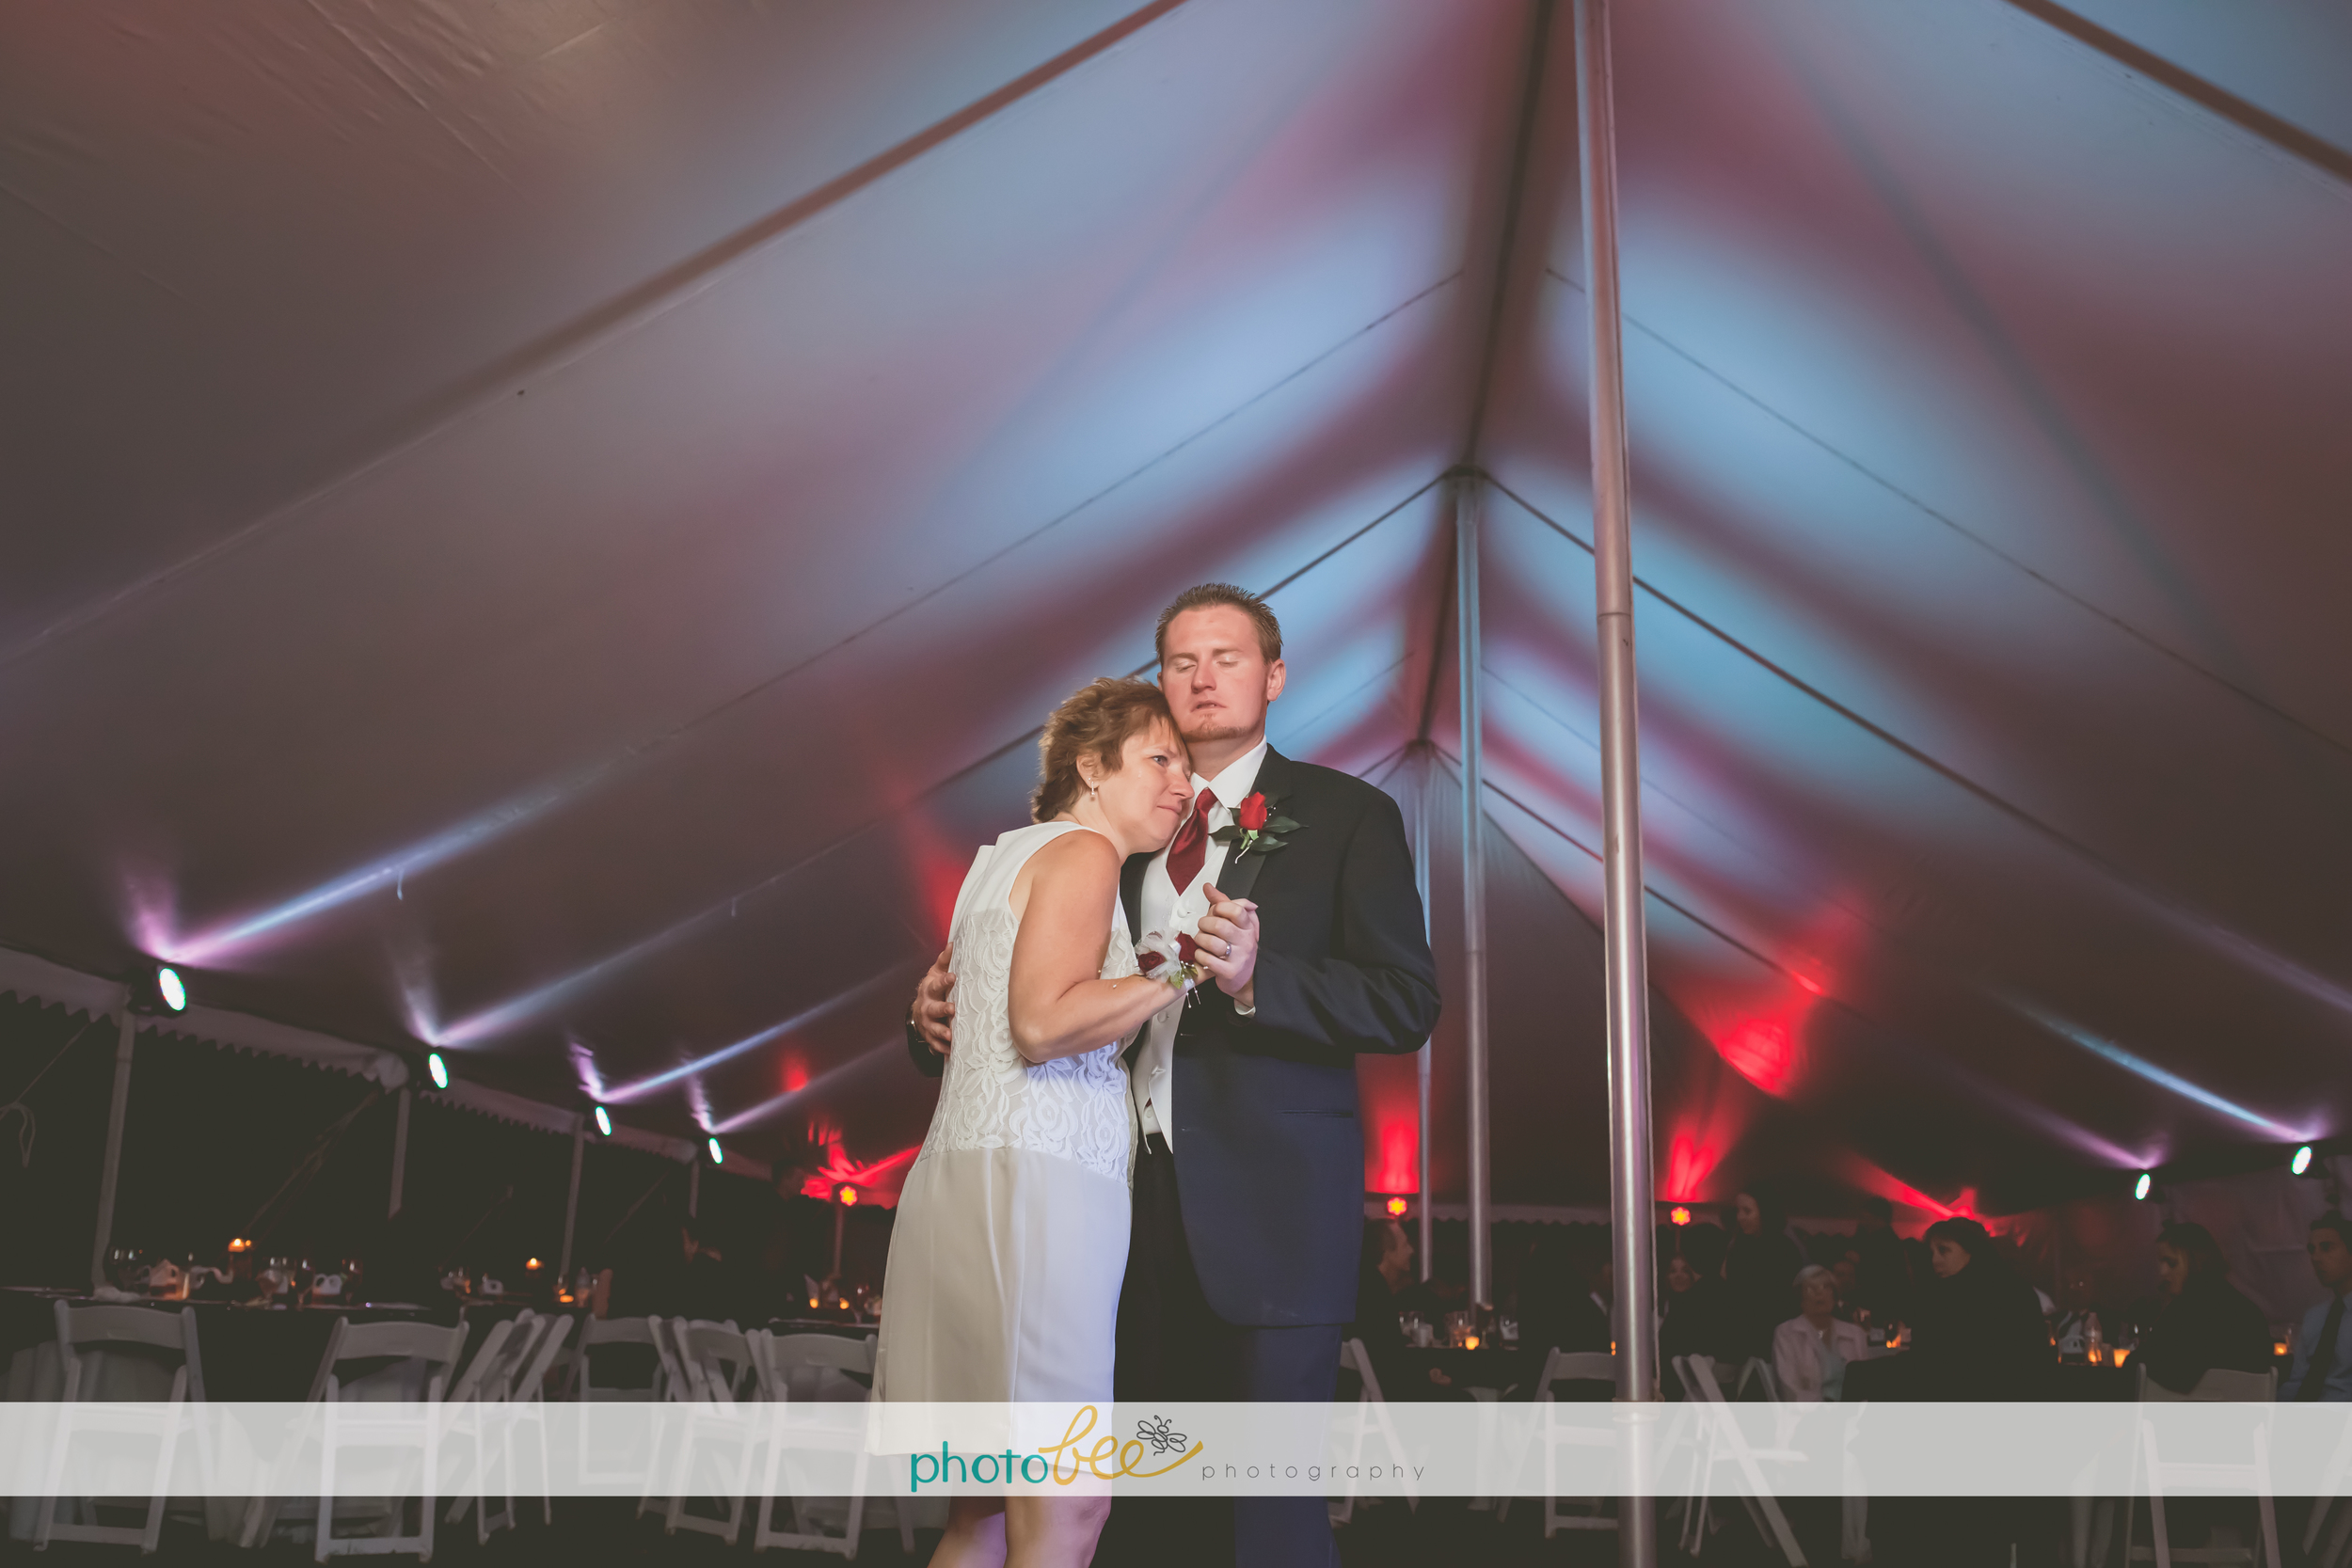 red and white uplighting in an outdoor tent